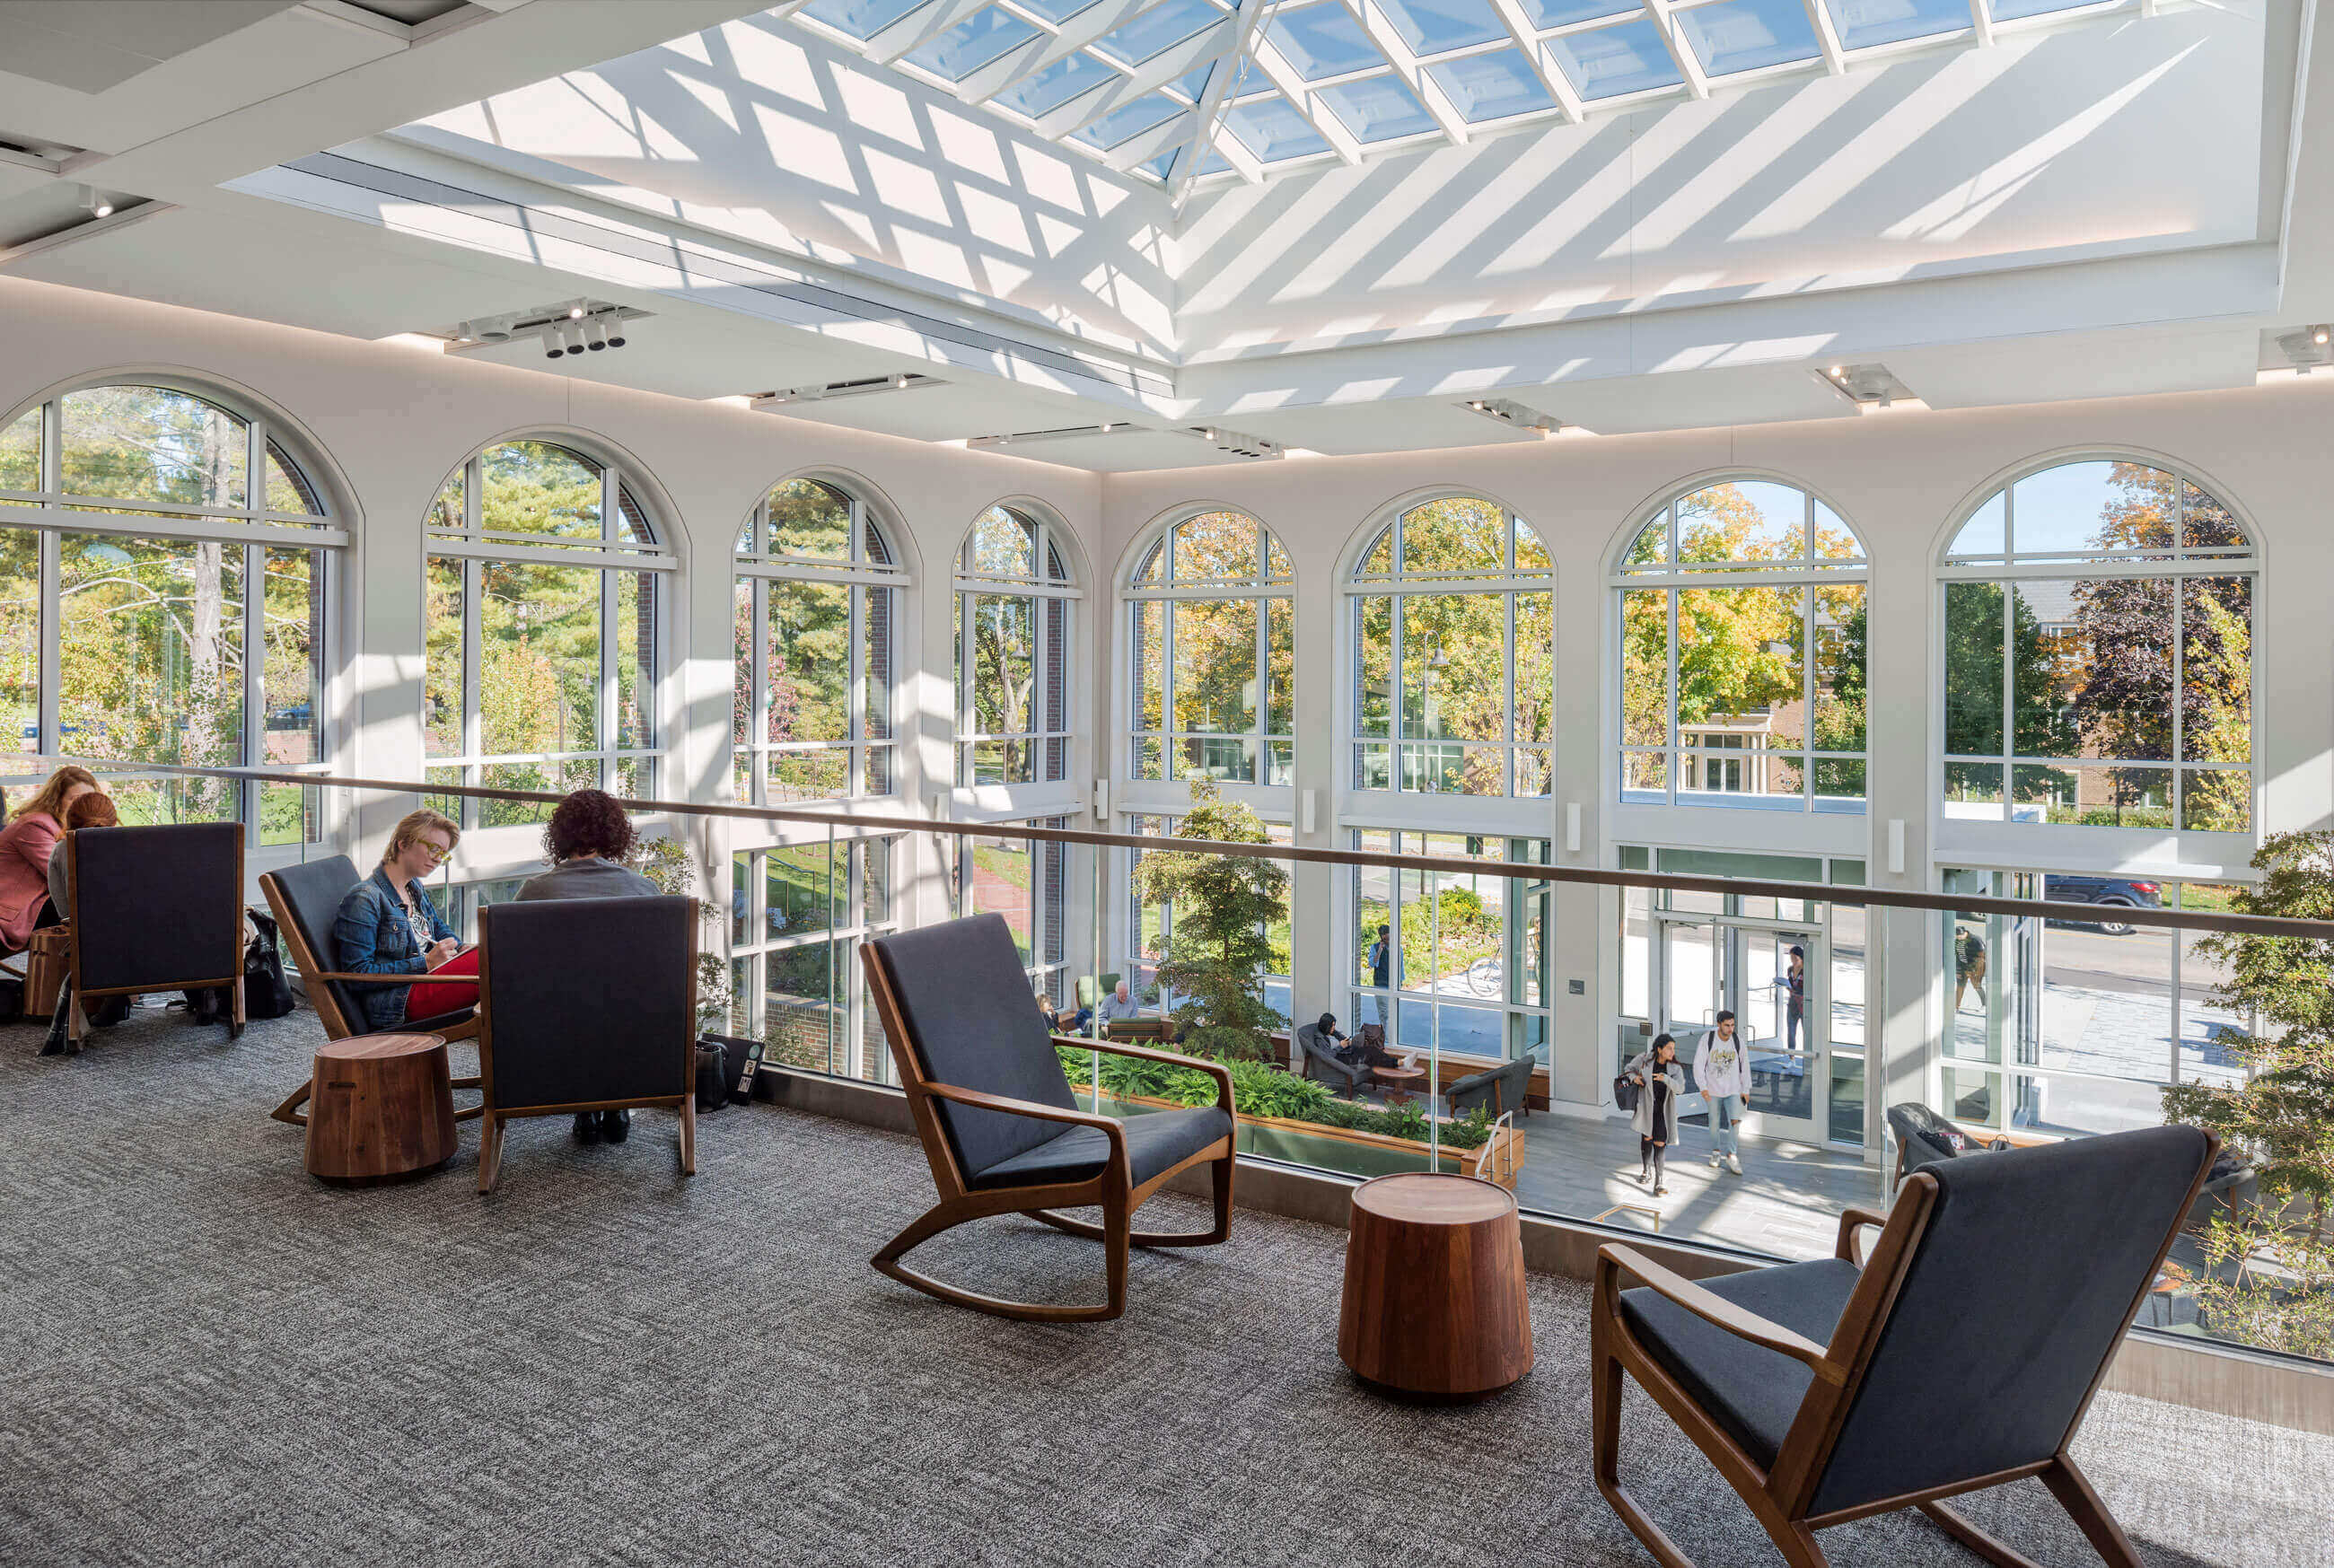 Students in rocking chairs on the balcony of the Commons, with a clear view of the space below, the large arched windows and the skylight.